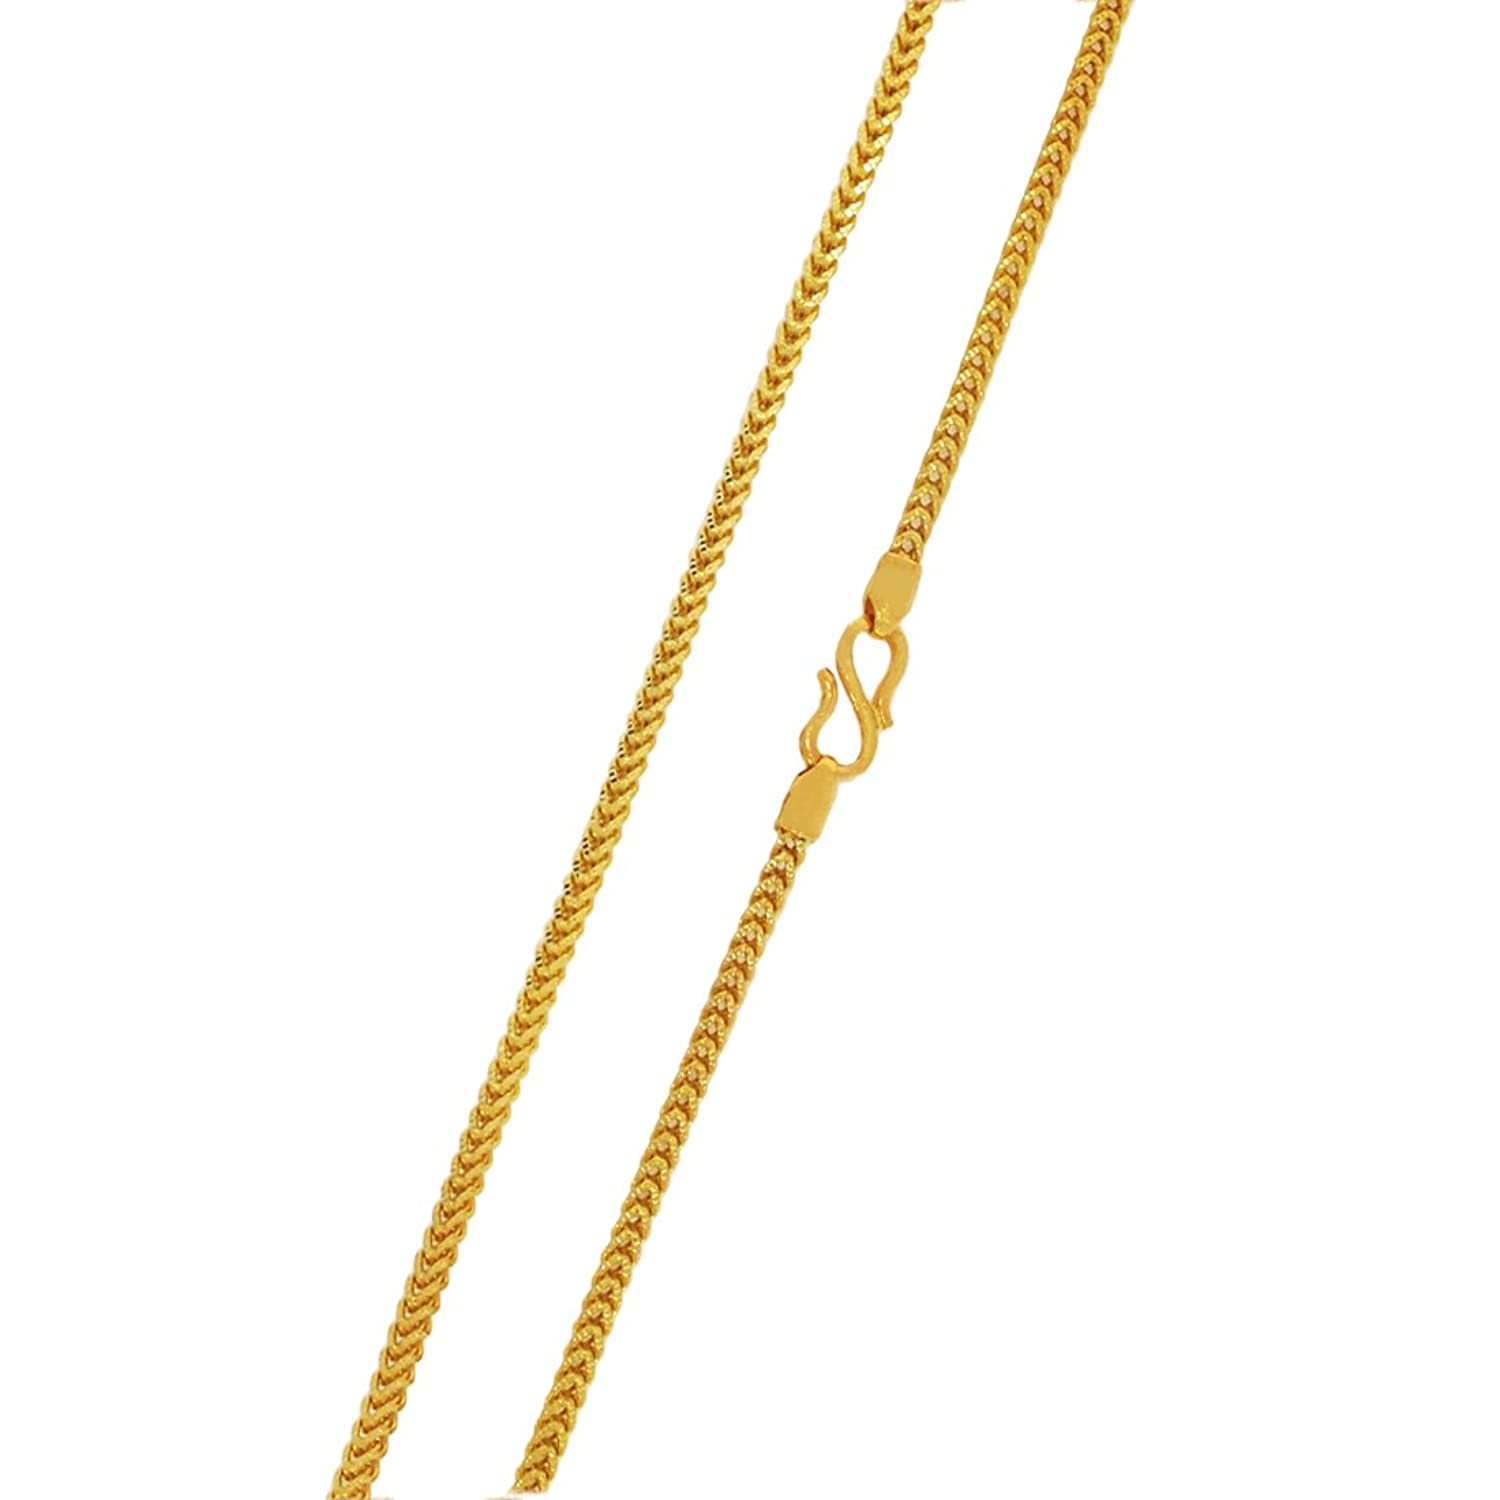 Buy Kalyan Jewellers 22KT Yellow Gold Chain for Women Online at ...